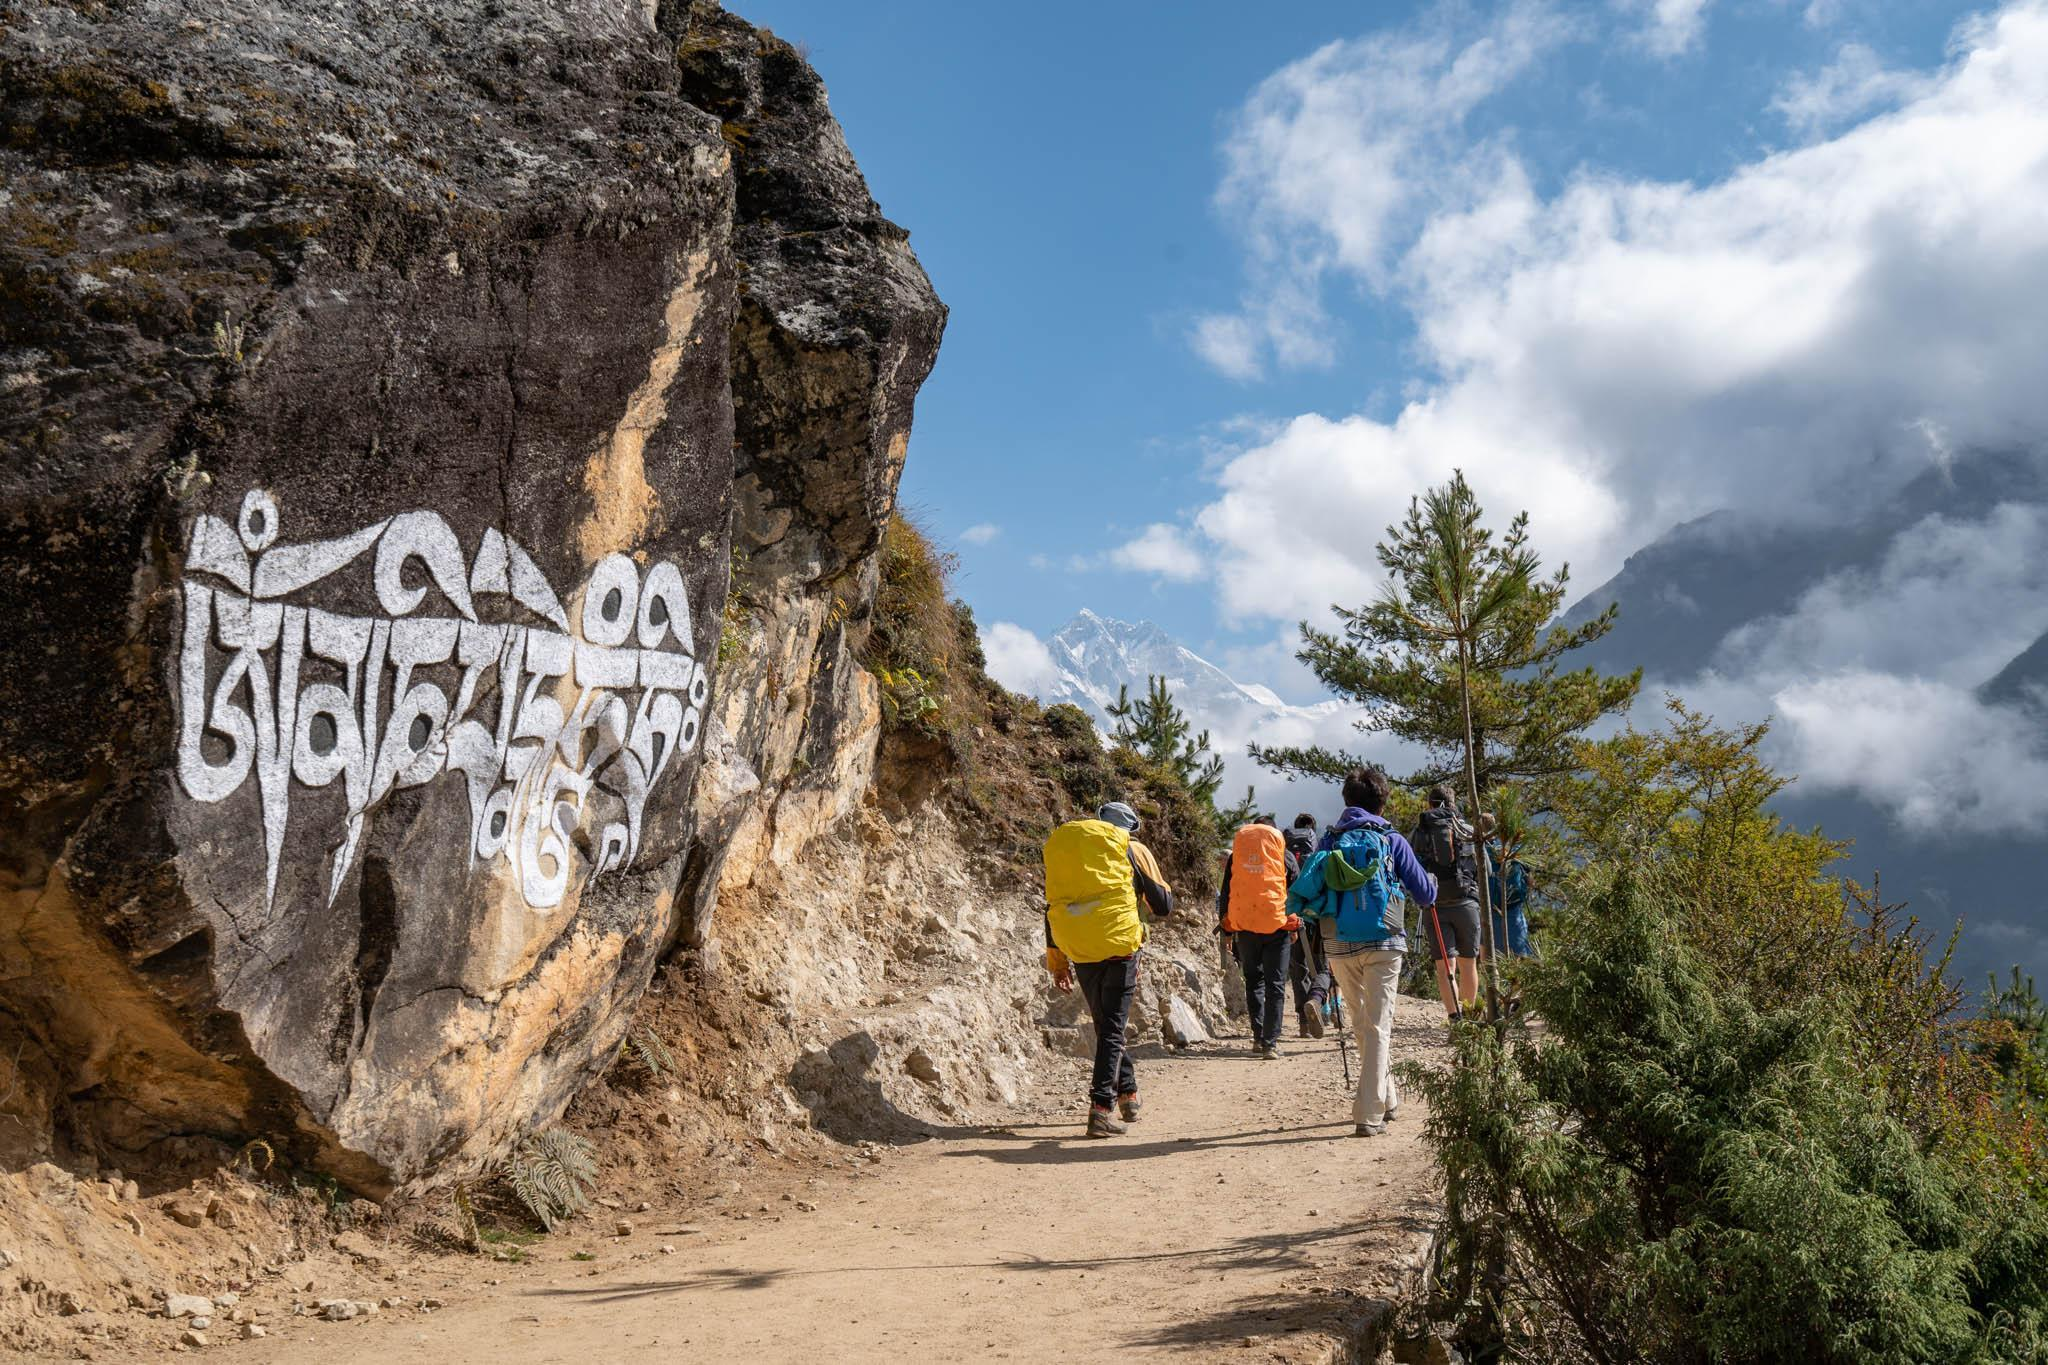 A group of walkers passing some Nepalese writing on a rock